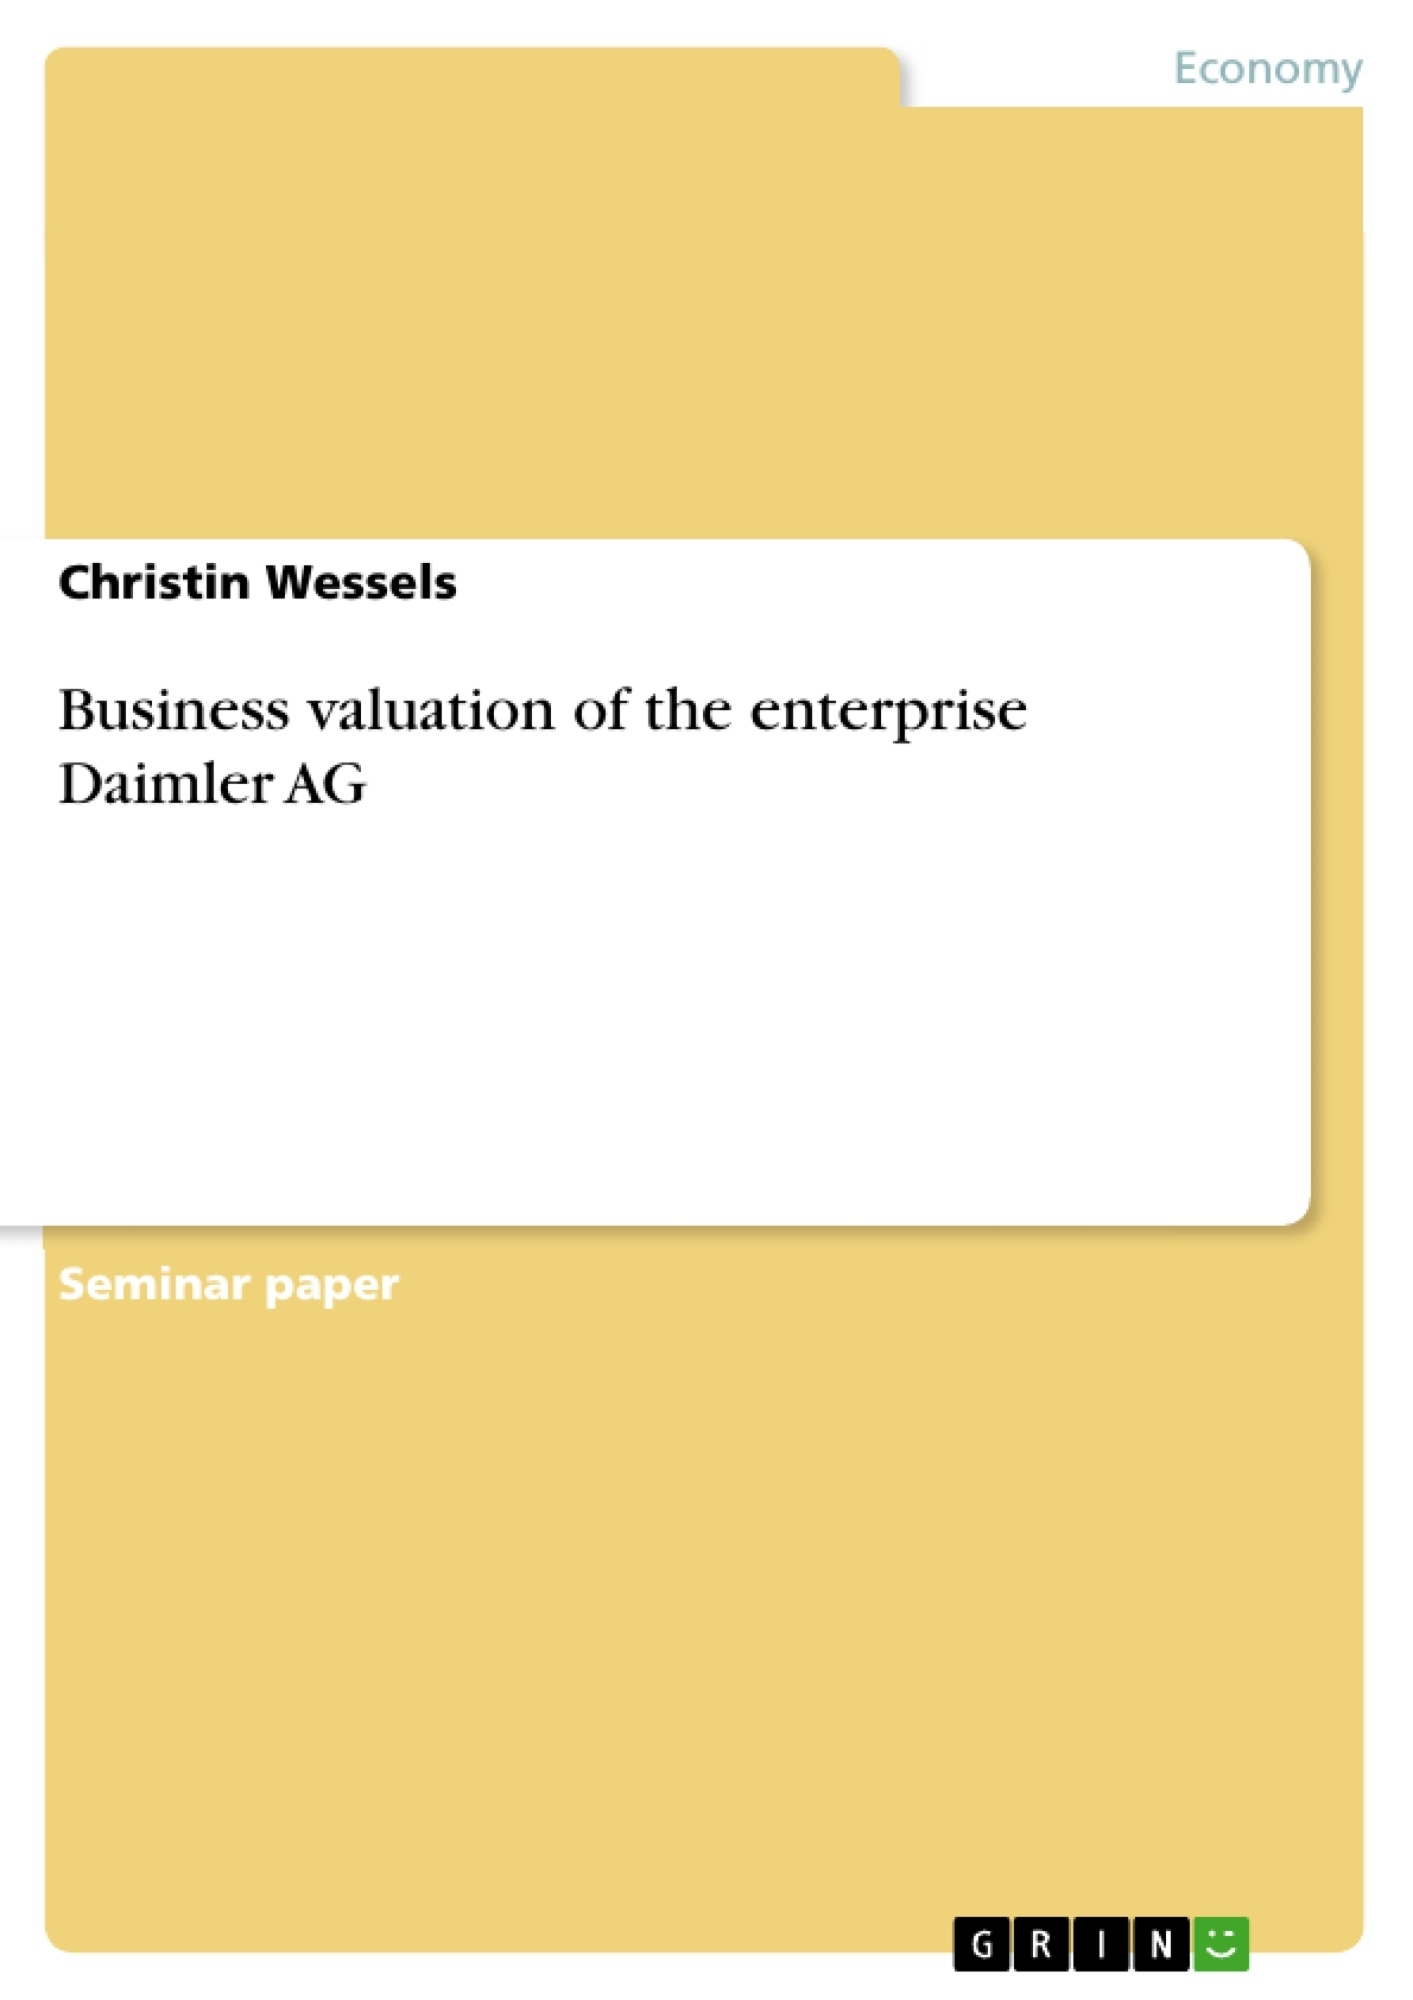 Title: Business valuation of the enterprise Daimler AG